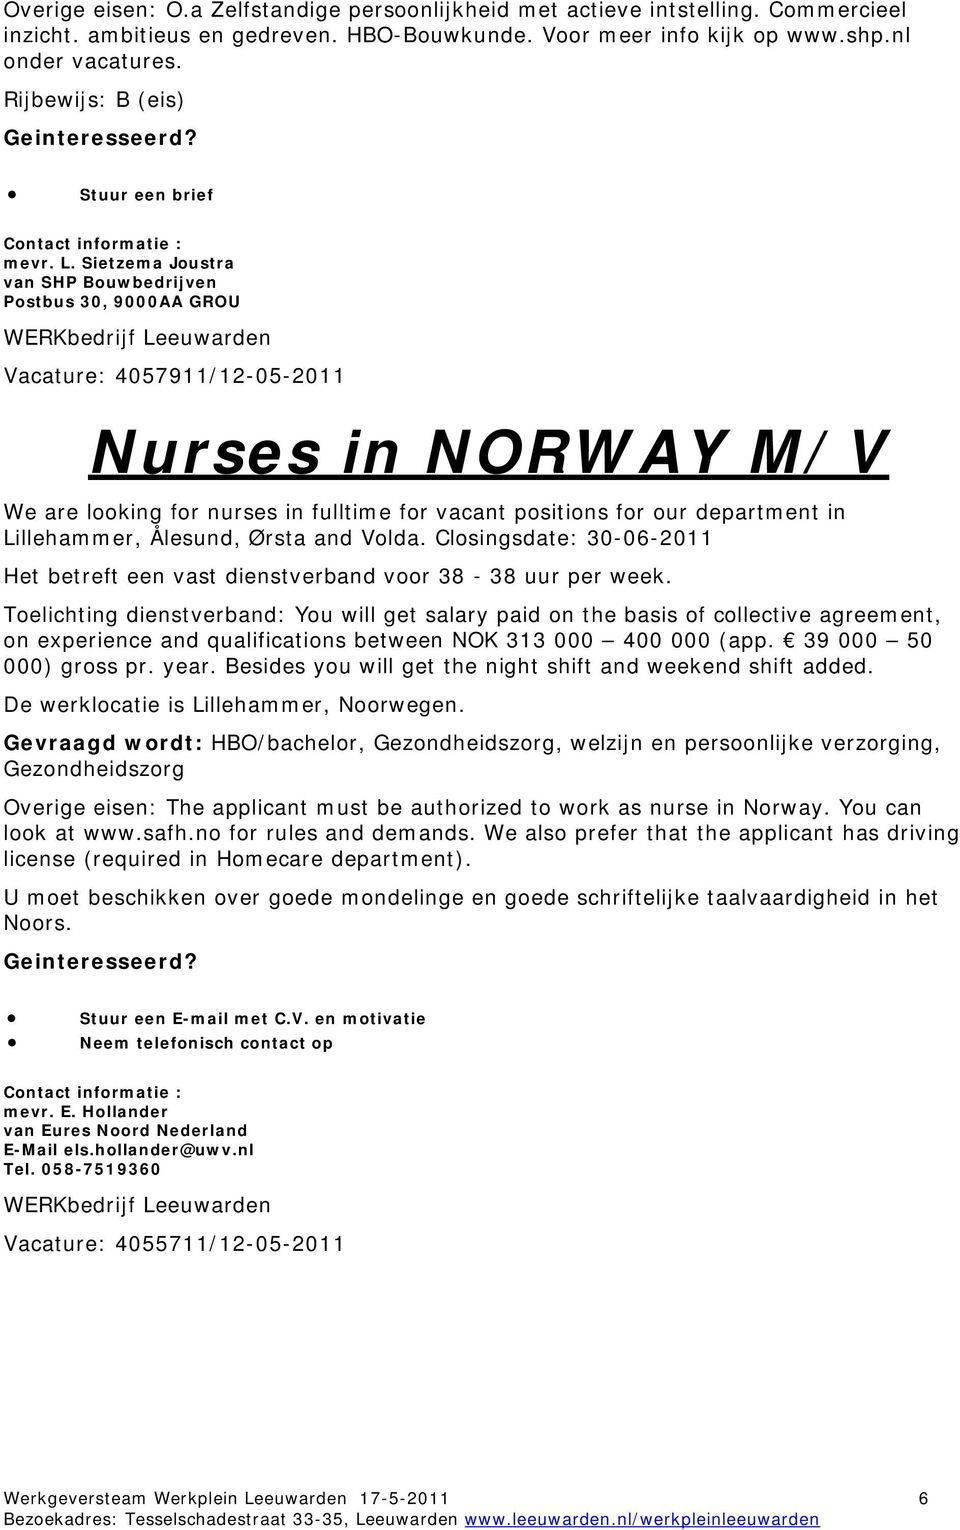 Sietzema Joustra van SHP Bouwbedrijven Postbus 30, 9000AA GROU Vacature: 4057911/12-05-2011 Nurses in NORWAY M/V We are looking for nurses in fulltime for vacant positions for our department in